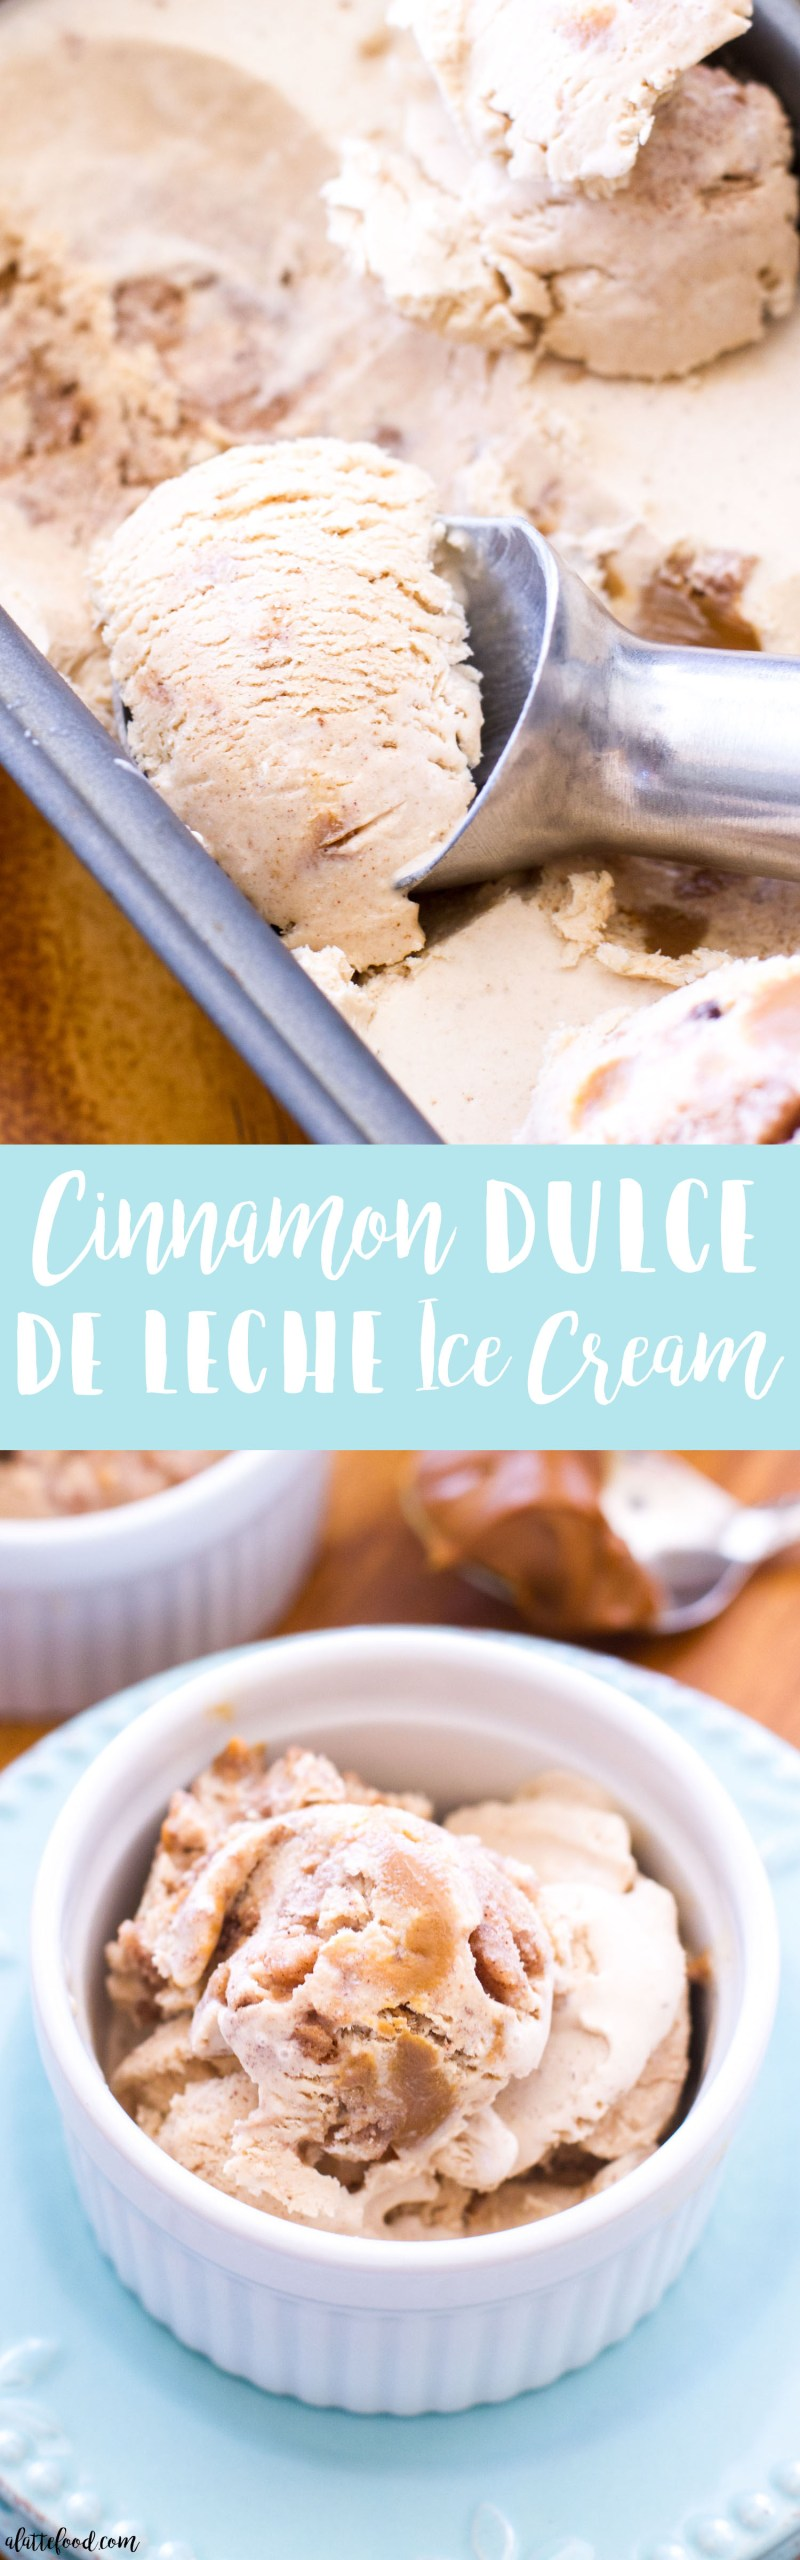 This homemade Cinnamon Dulce de Leche Ice Cream is filled with homemade cinnamon crunch bits and swirled with dulce de leche! It's like eating a churro in ice cream form. Cinco de Mayo dessert has never tasted this good. High-fives all around! ice cream, churro, cinnamon